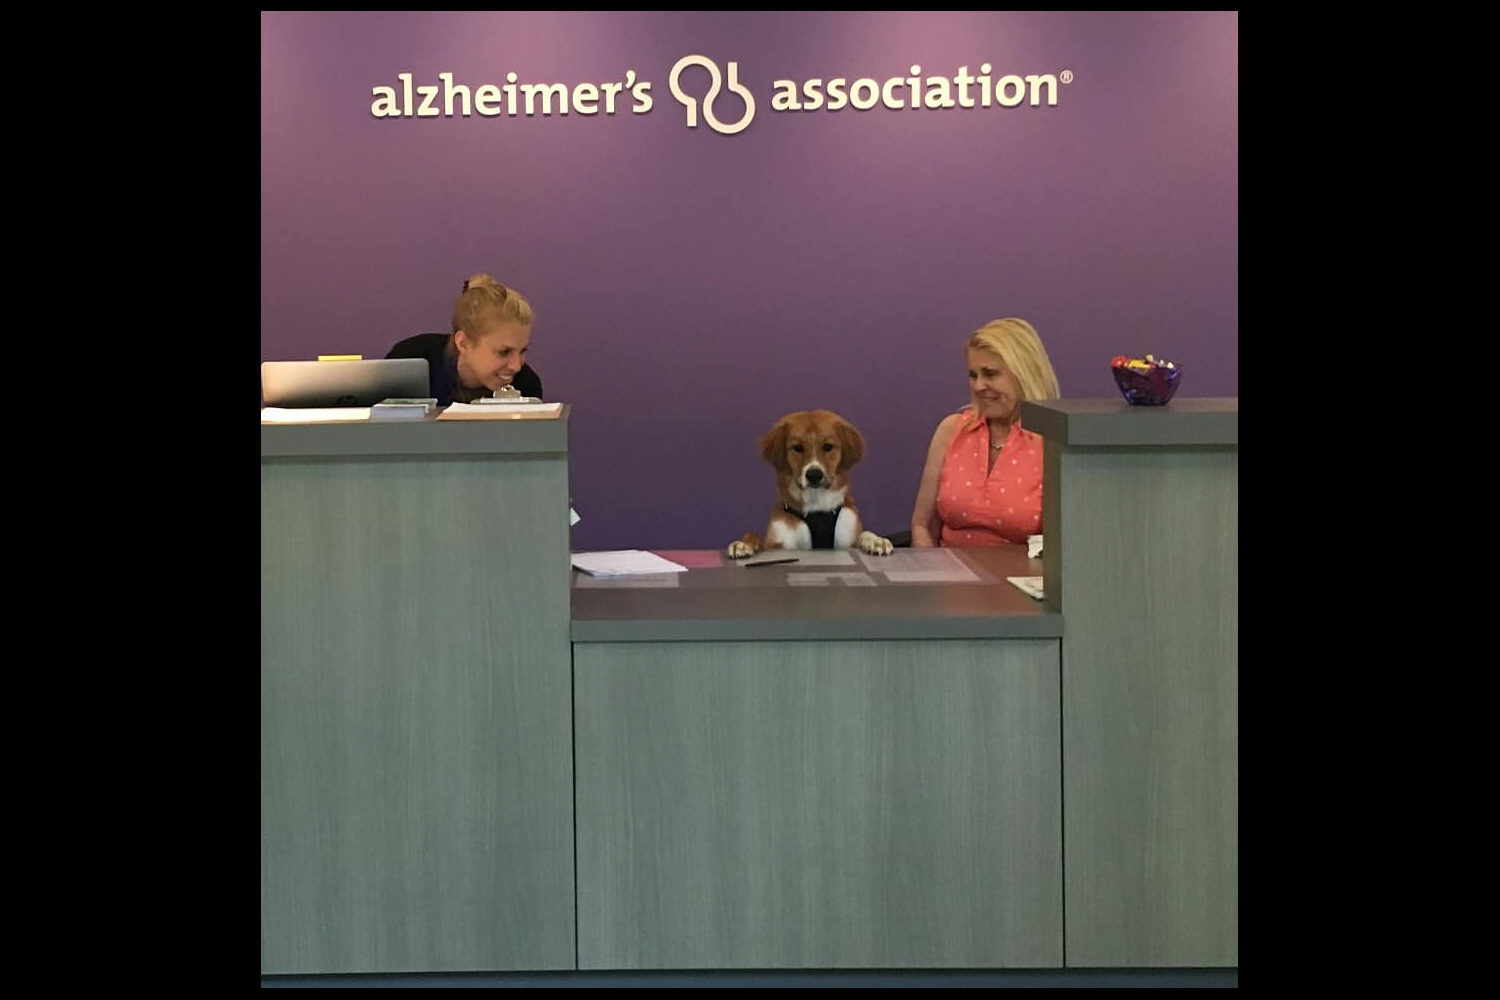 Darrel at work at the Alzheimers Association{ }(Image: Hailey Adair)